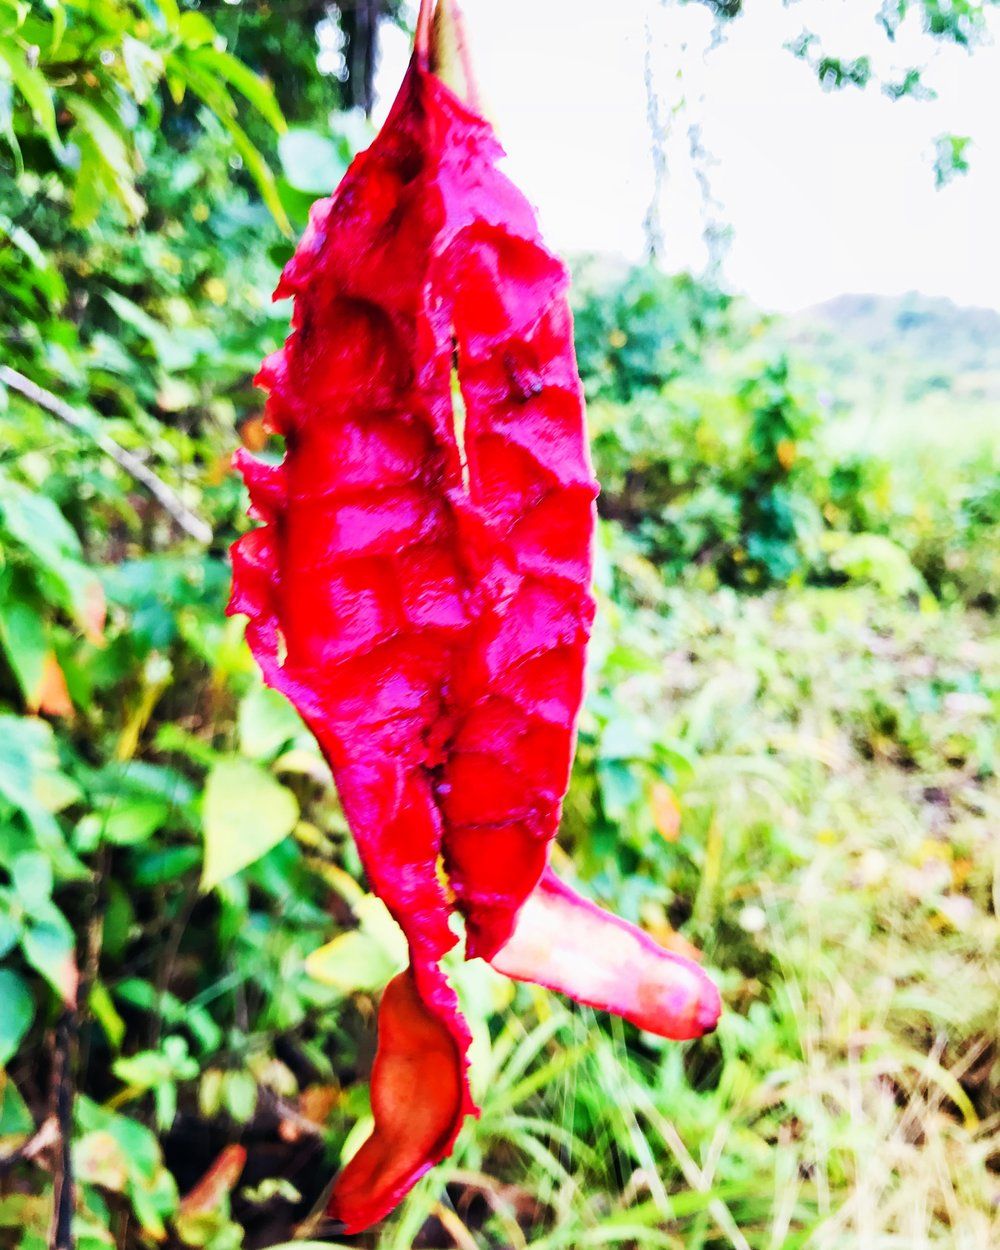 red pod martinique.JPG